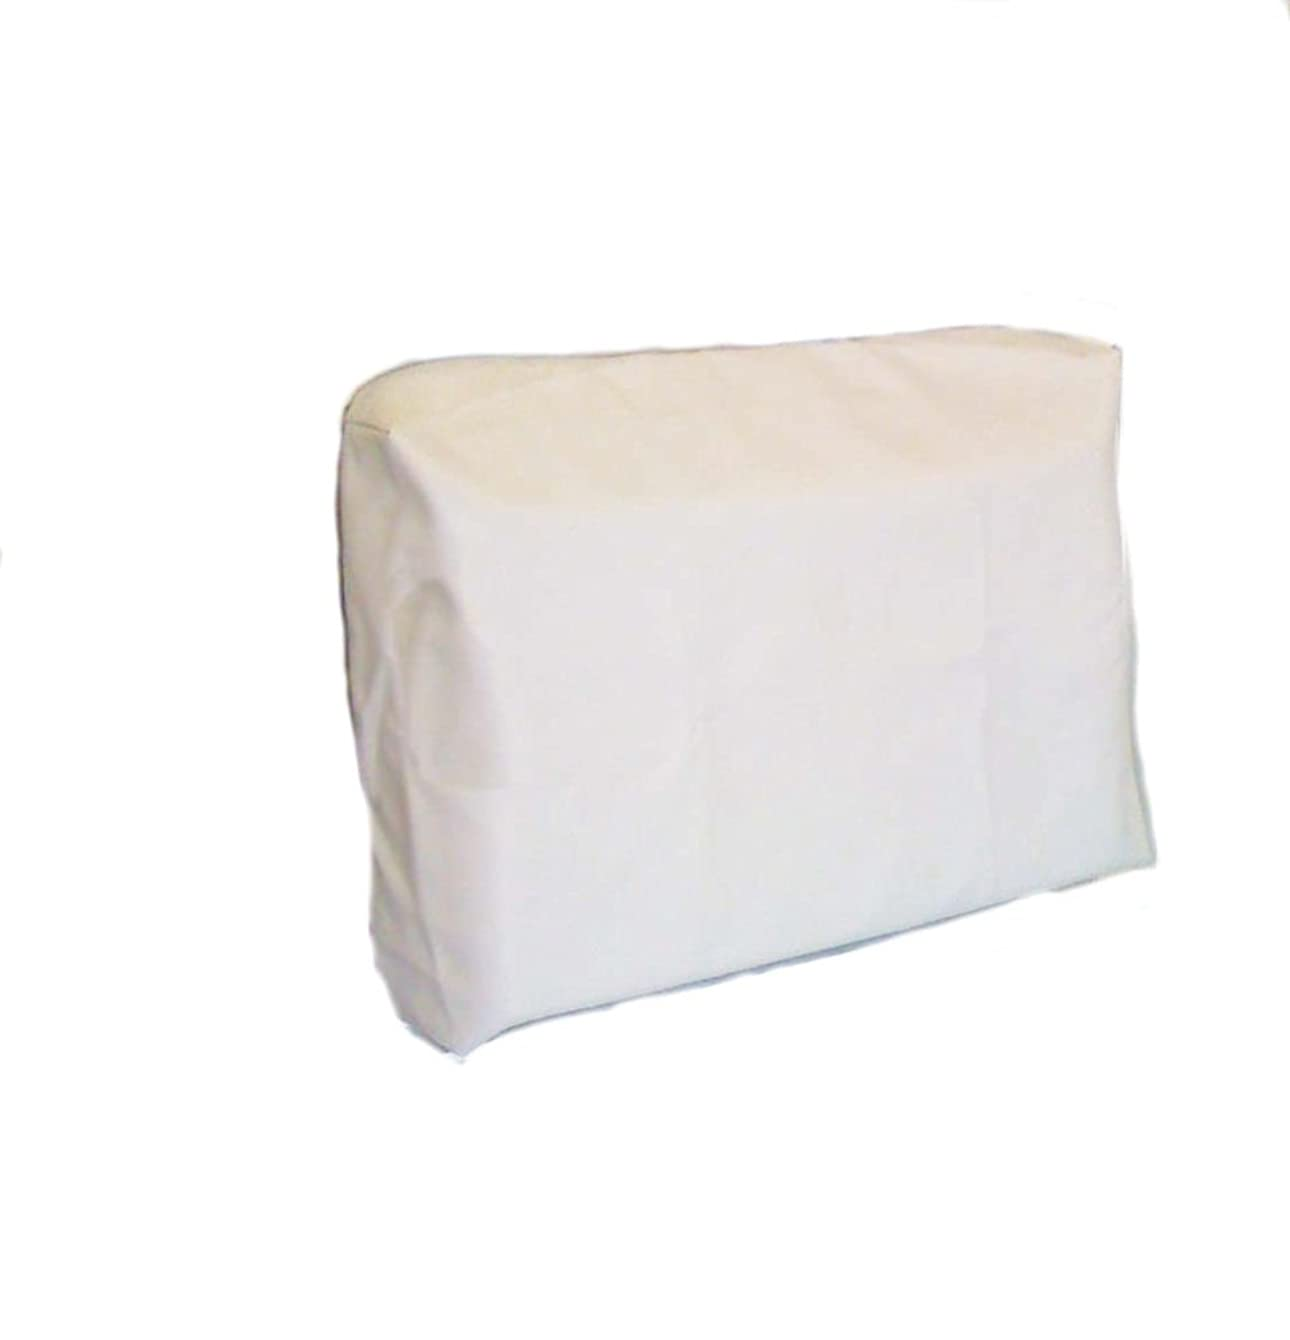 AIR CONDITIONING WINDOW UNIT SMALL INTERIOR COVER